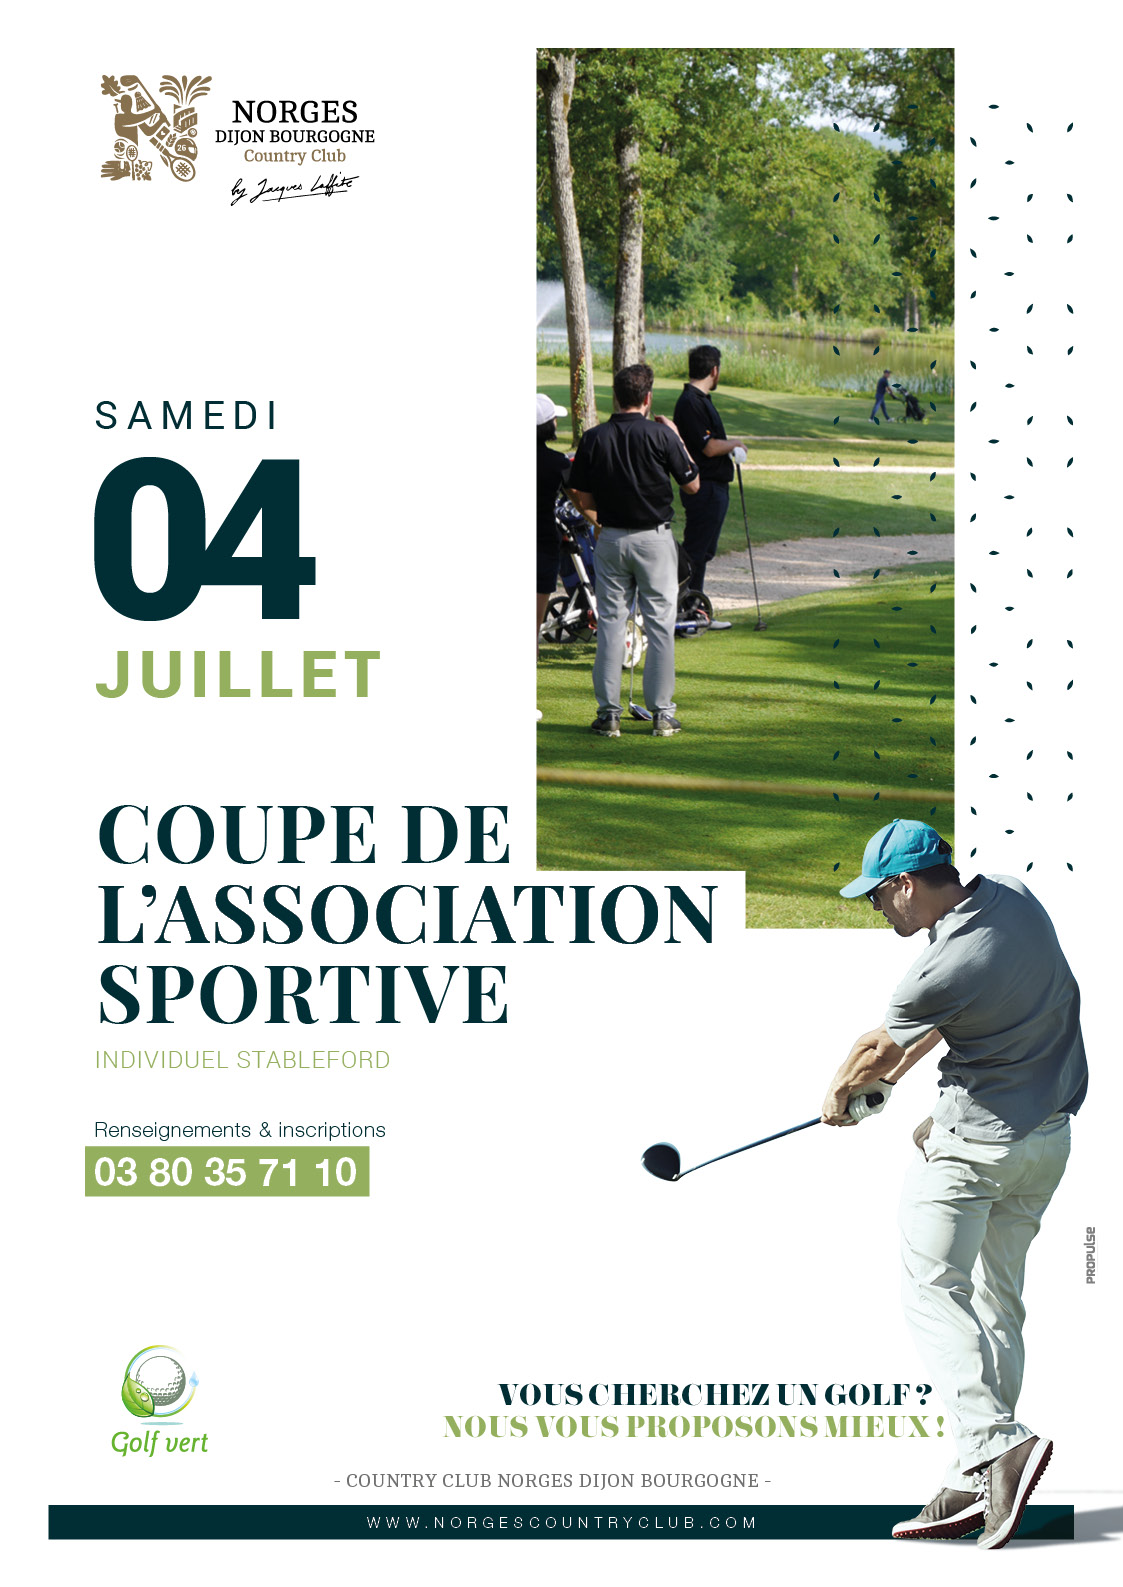 Coupe de l'association sportive